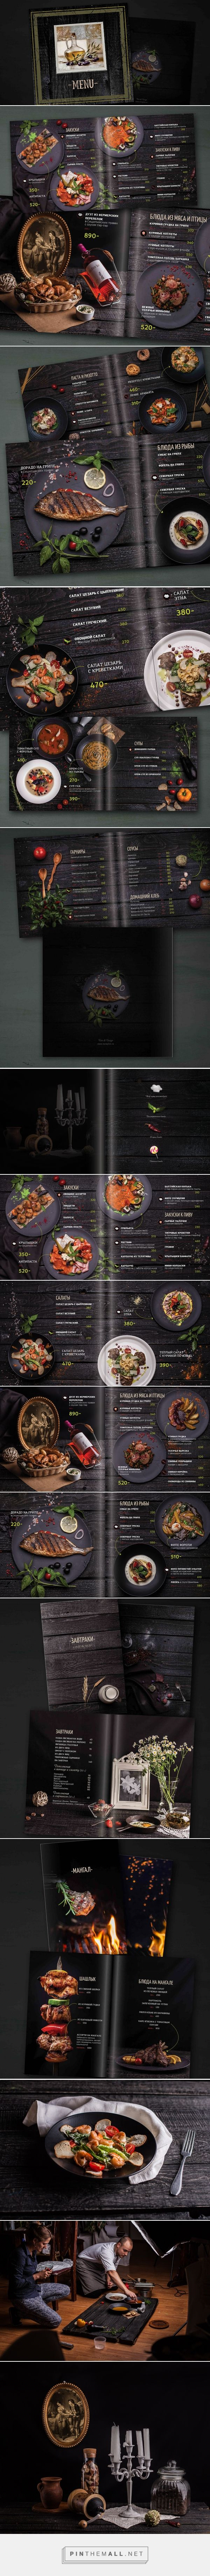 Design menu for restaurant Moscow on Behance https://www.behance.net/gallery/42830329/Design-menu-for-restaurant-Moscow - created via https://pinthemall.net